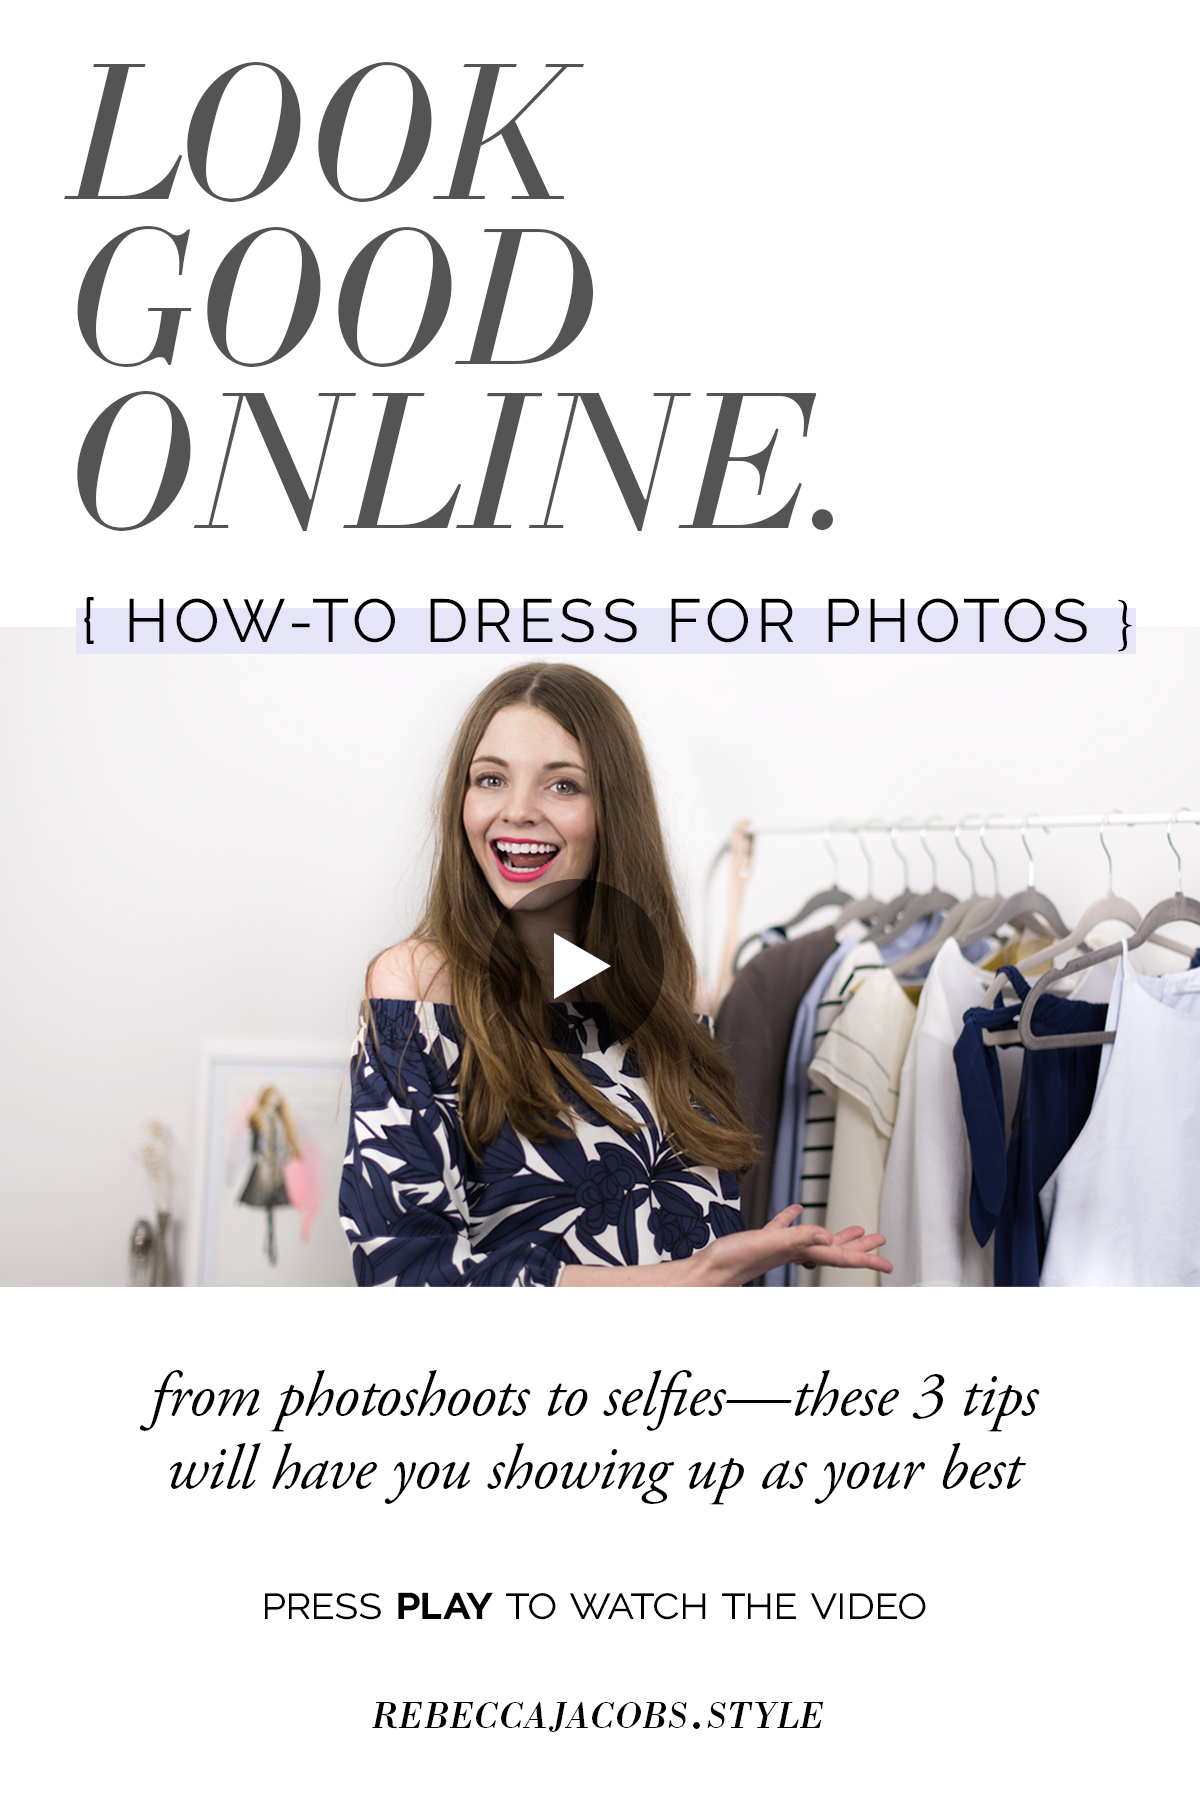 how-to-look-good-in-photos-for-entrepreneurs.jpg